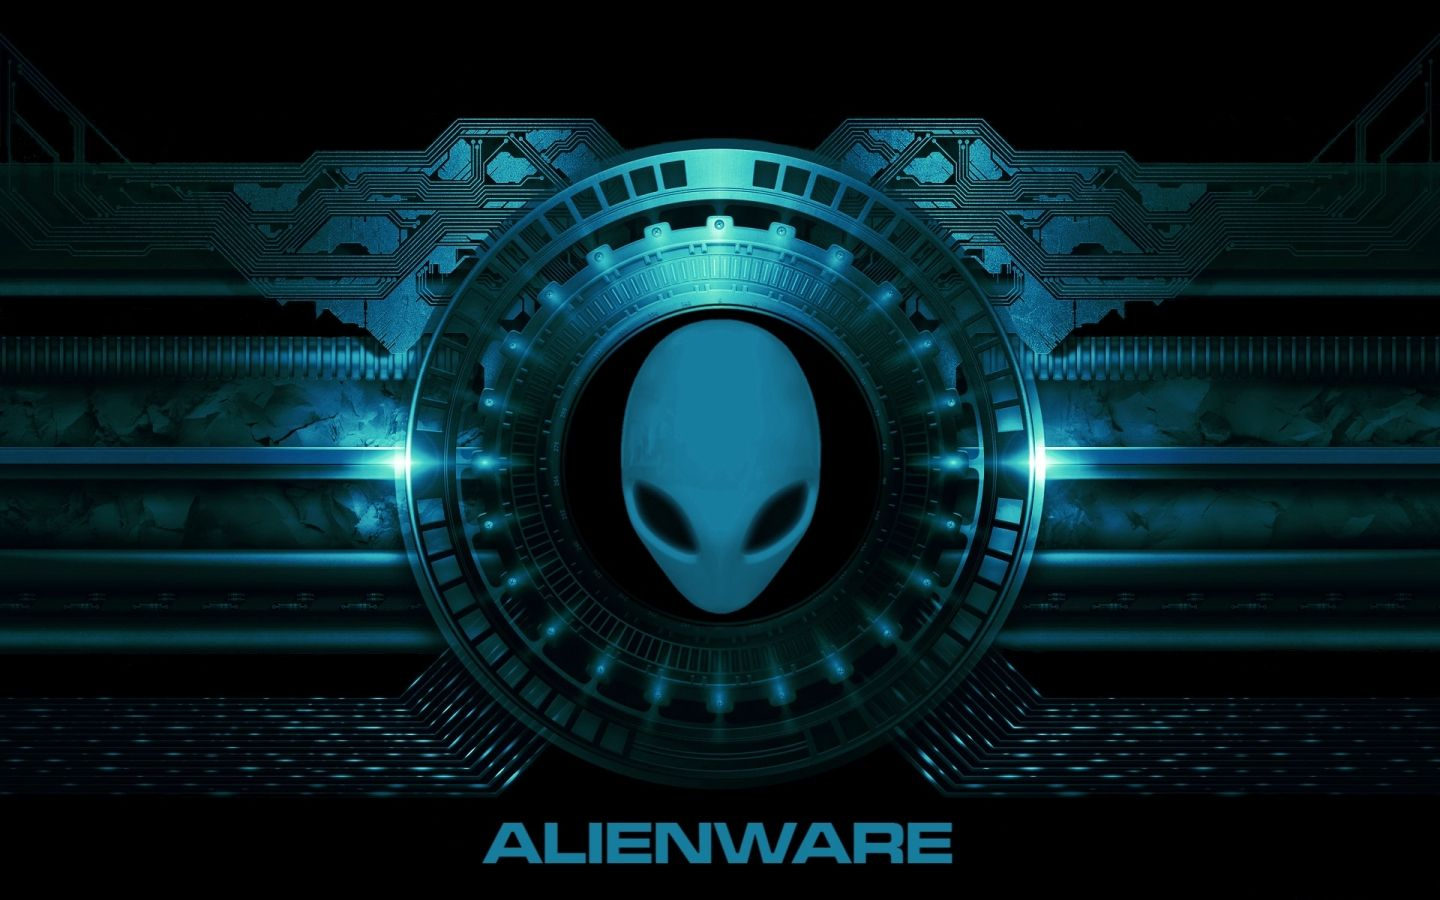 Silver desktop wallpaper alienware wallpapers pinterest wallpaper alienware desktop backgrounds can finish off the look of your alienware fx themes by complimenting the colors voltagebd Choice Image